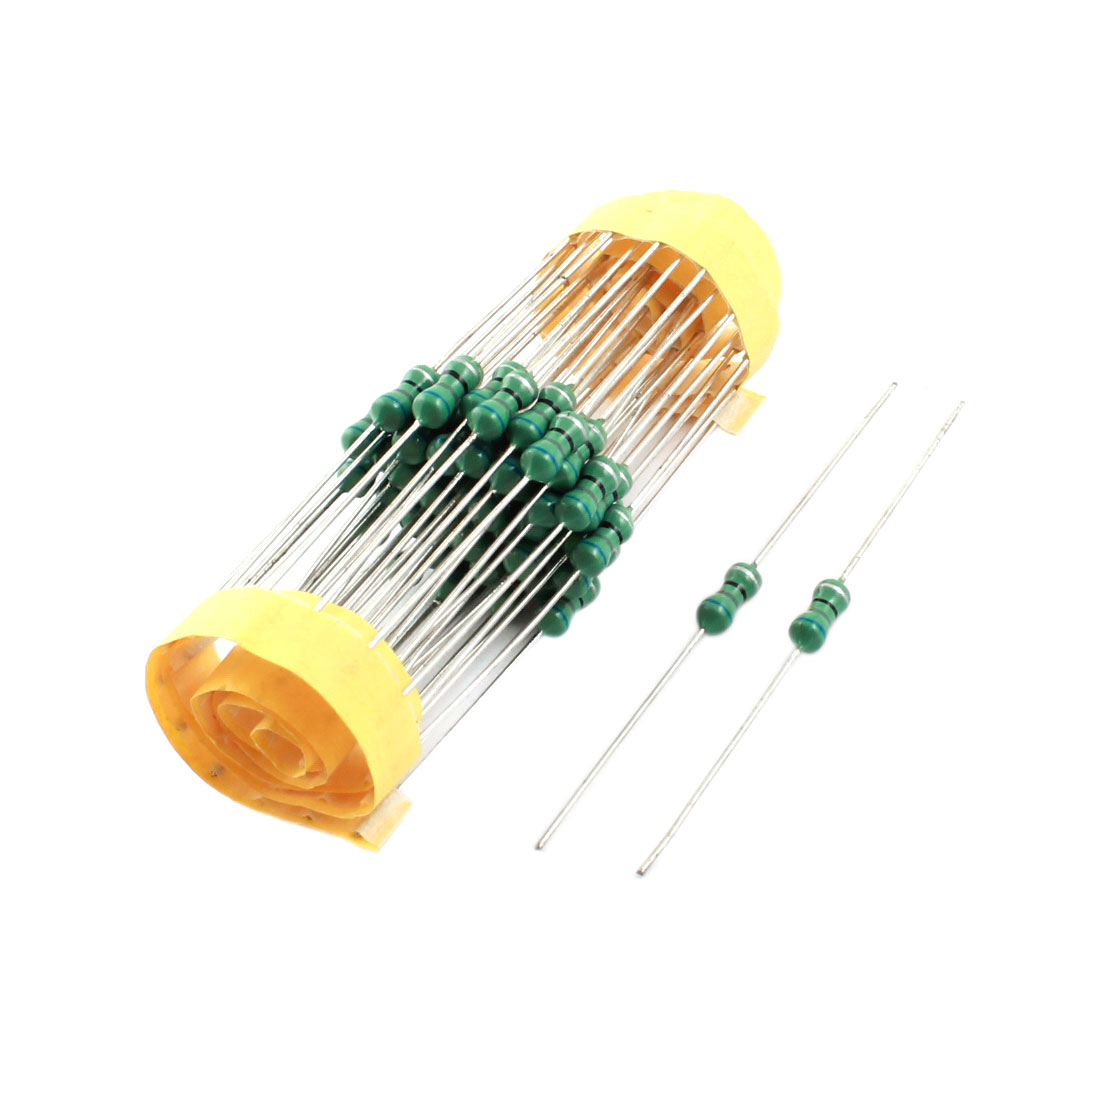 PCB Board Through Hole Mount 680uH 4x10mm 0410 1/2W 10% Tolerance Axial Leaded Color Ring Inductors 50Pcs